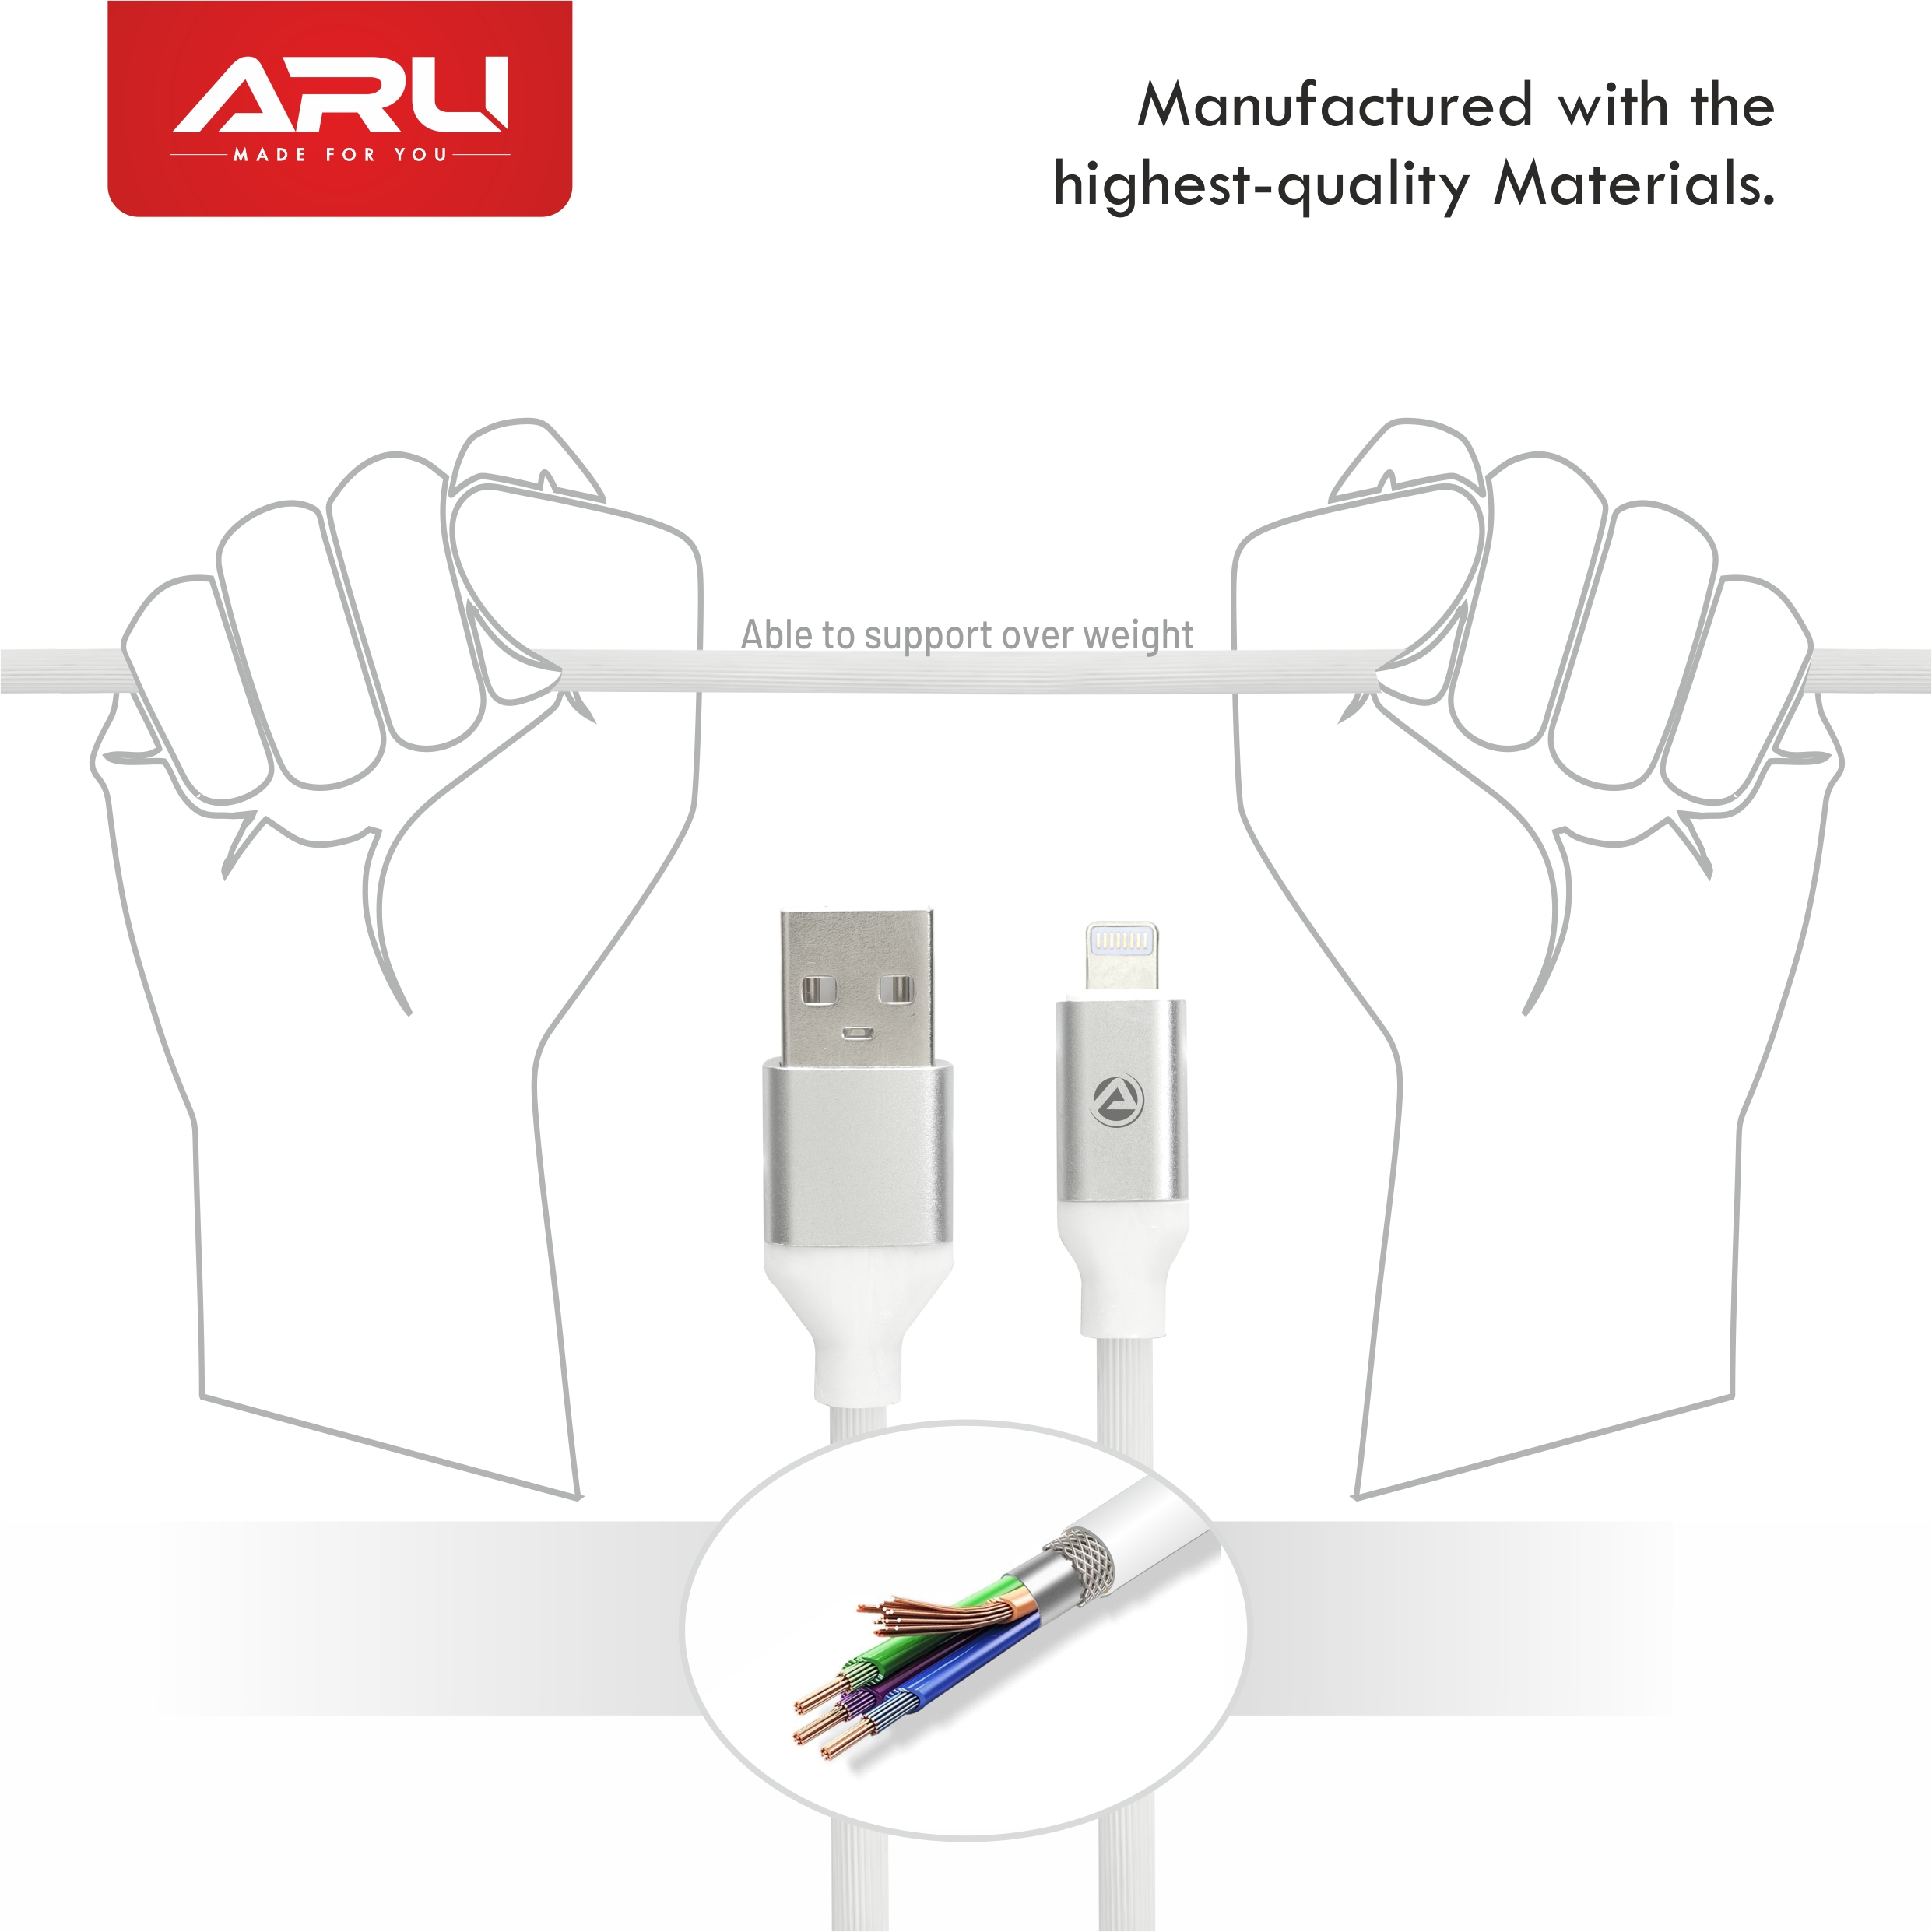 ARU ARI-55 1Mtr,2.4 Amp TPE Lining Lightening Charge & Sync Cable - Black - White Pack Of 2